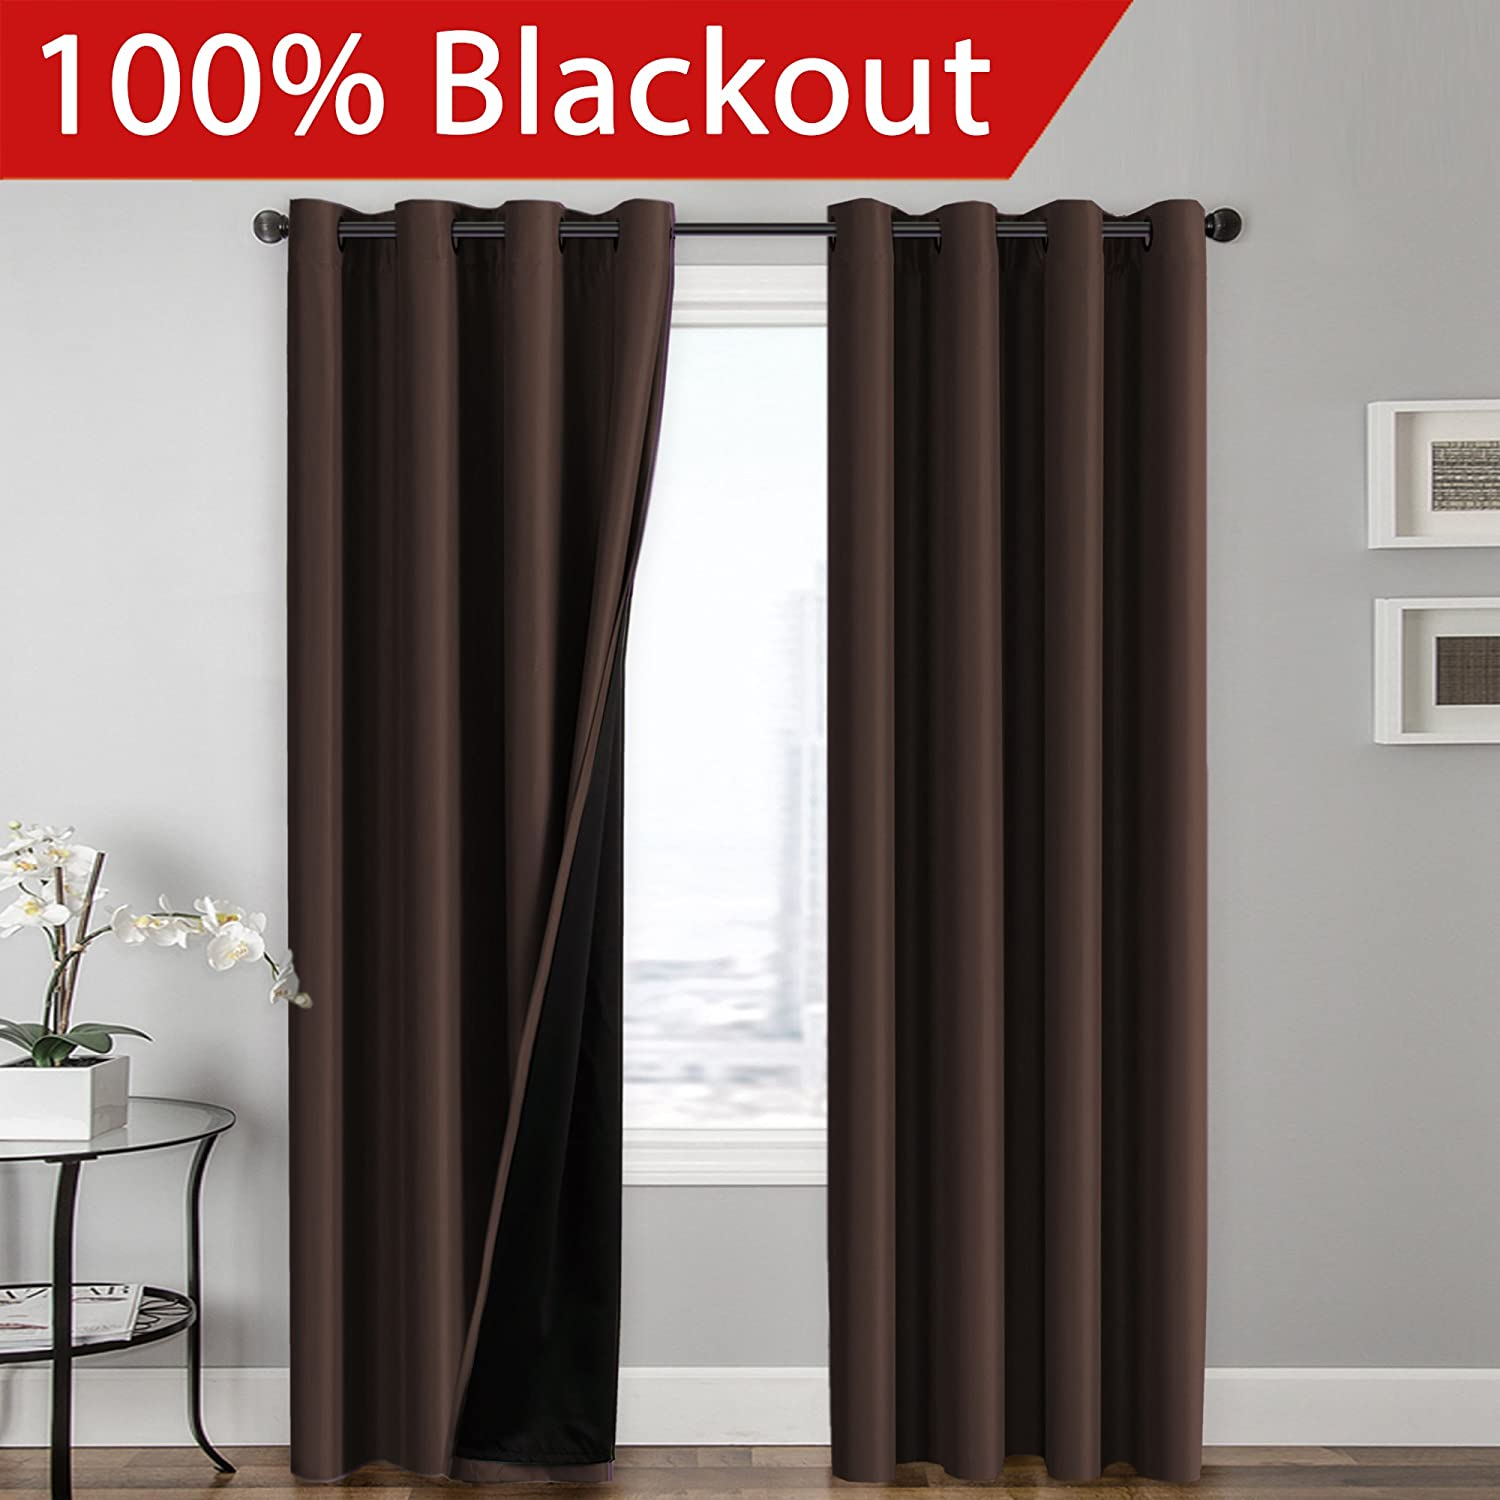 products curtains fabric curtain inch bedroom set door kids poly nursery x panels baby a animals toddler satin jungle for or blackout of